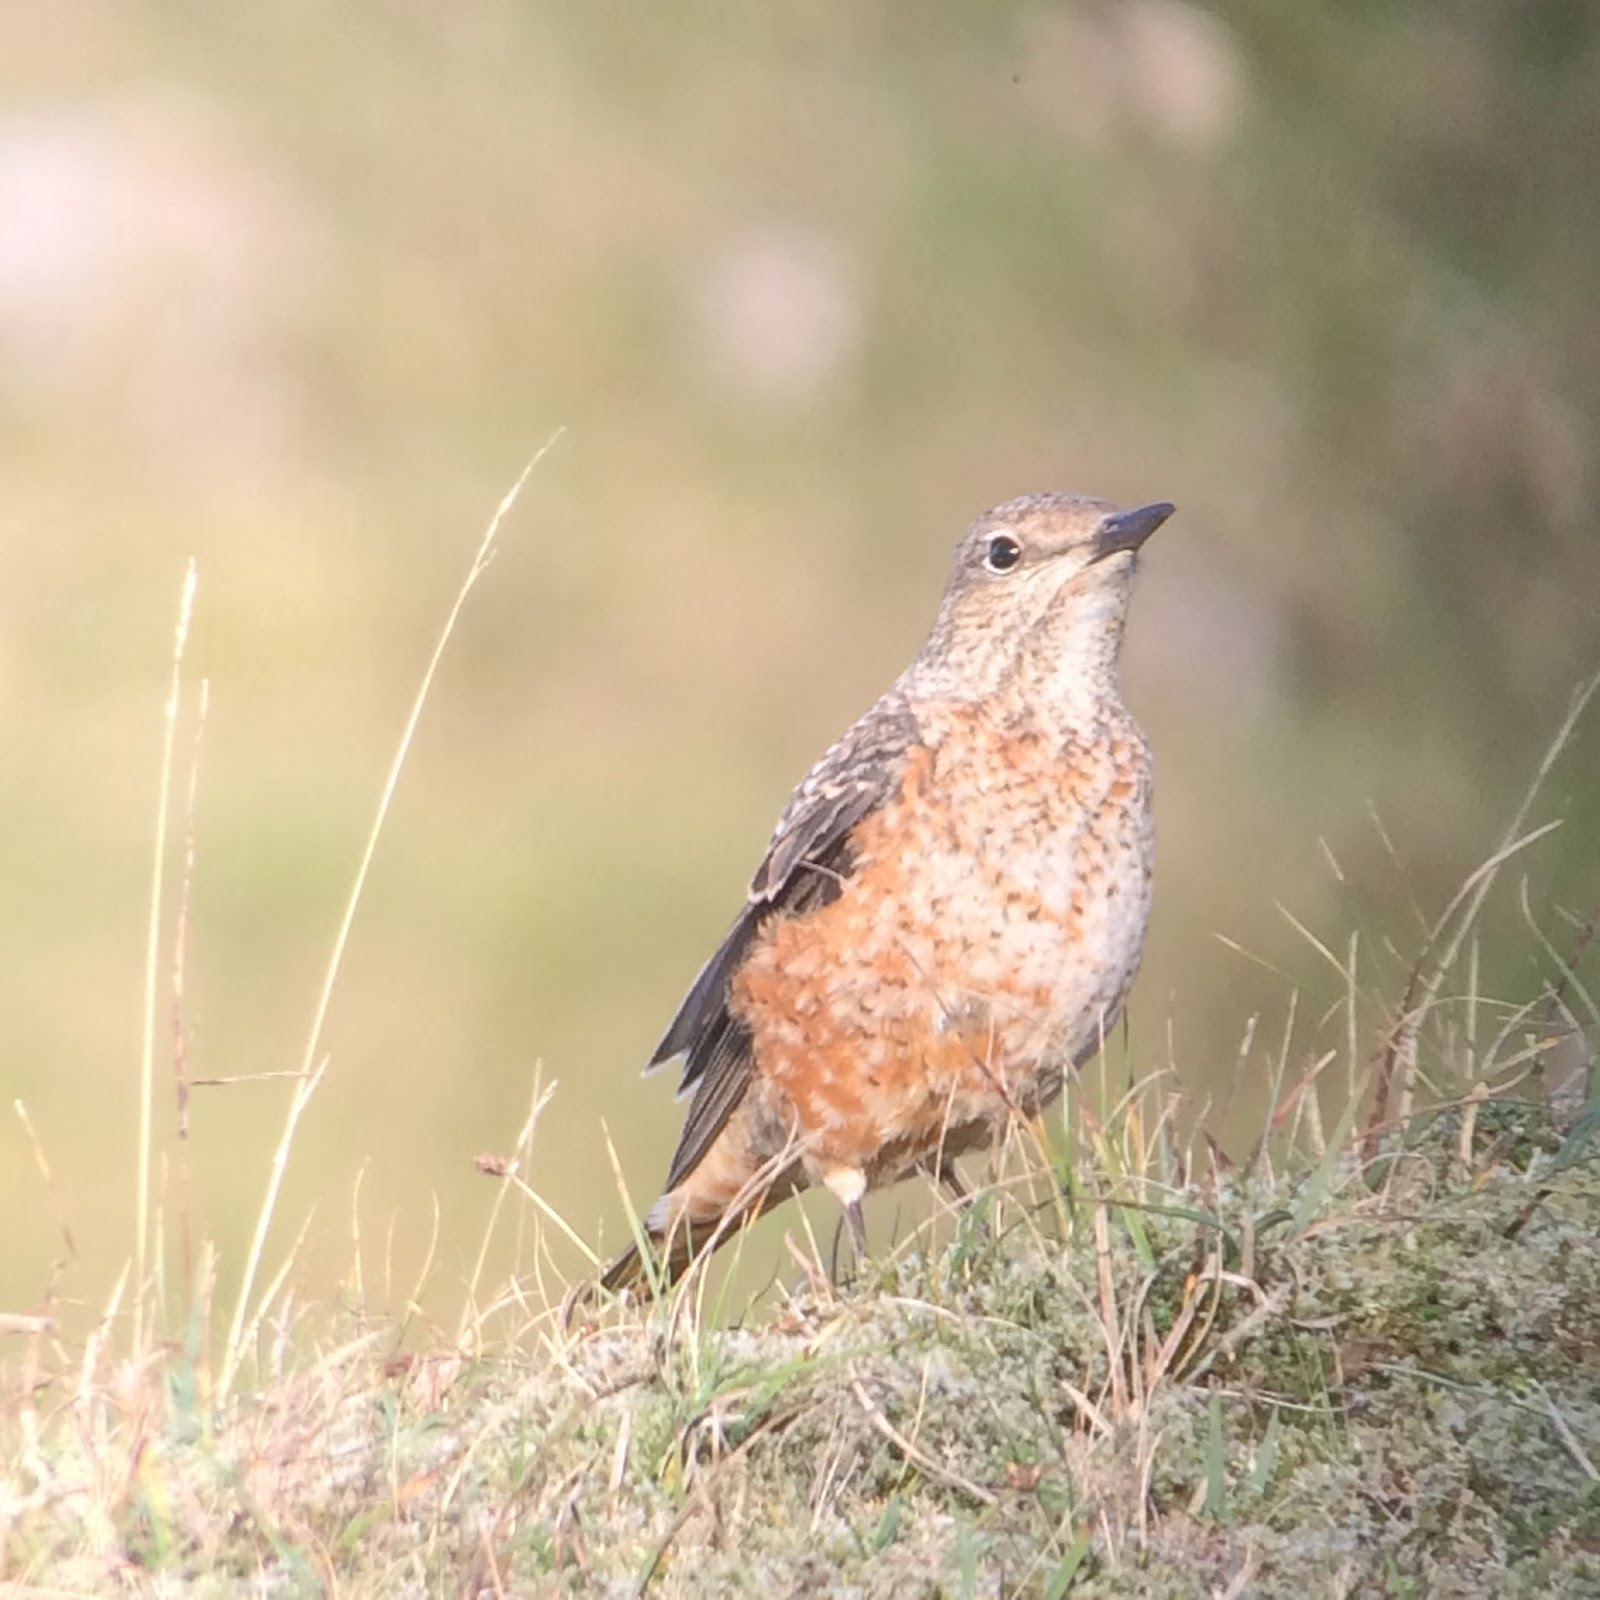 Rufous-tailed Rock Thrush twitch 13 October 2017